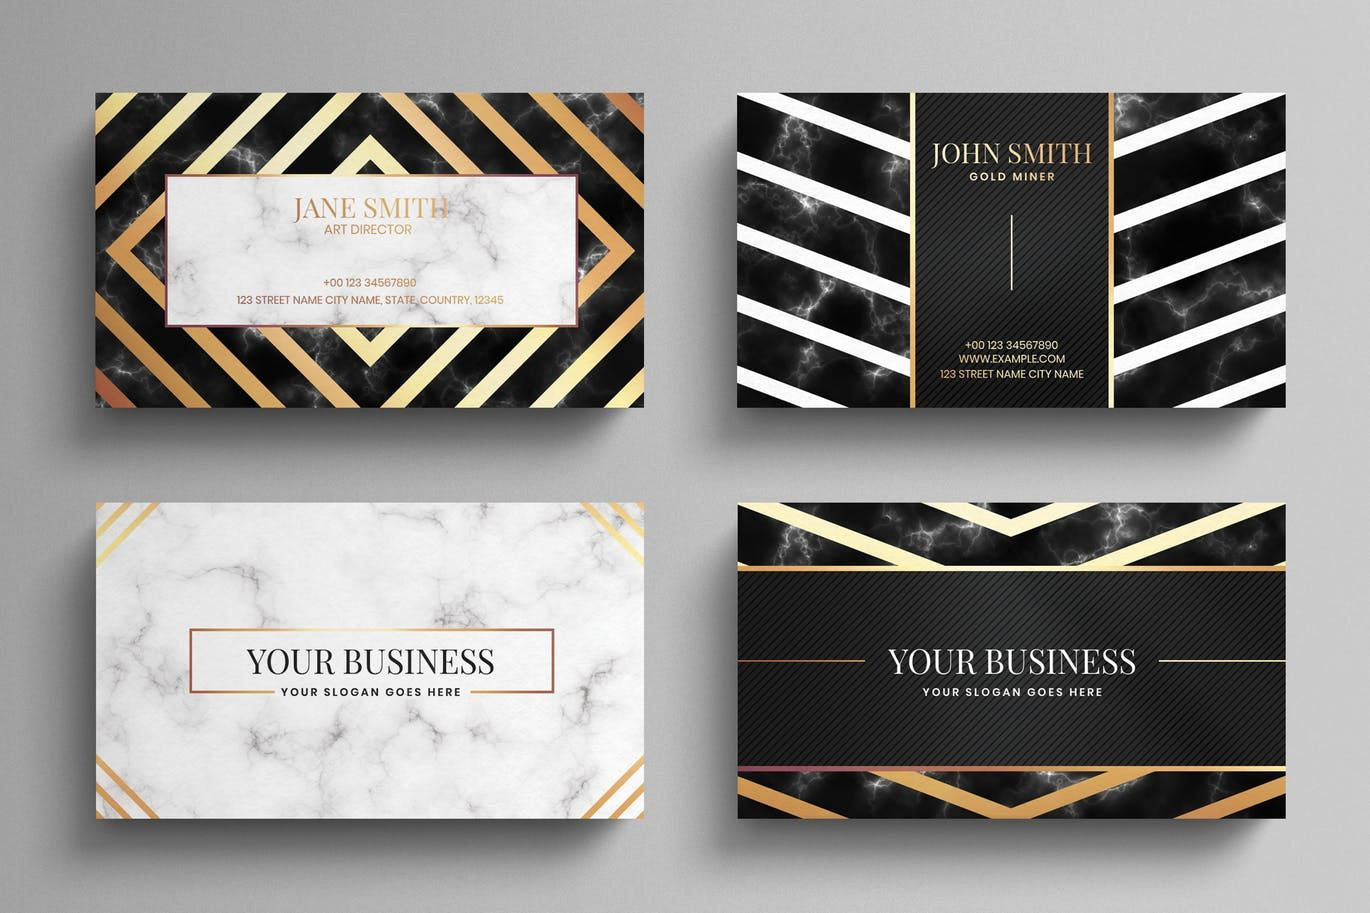 Luxury Business Card Template By Eightonesixstudios On Envato Elements Business Card Template Psd Luxury Business Cards Business Card Template